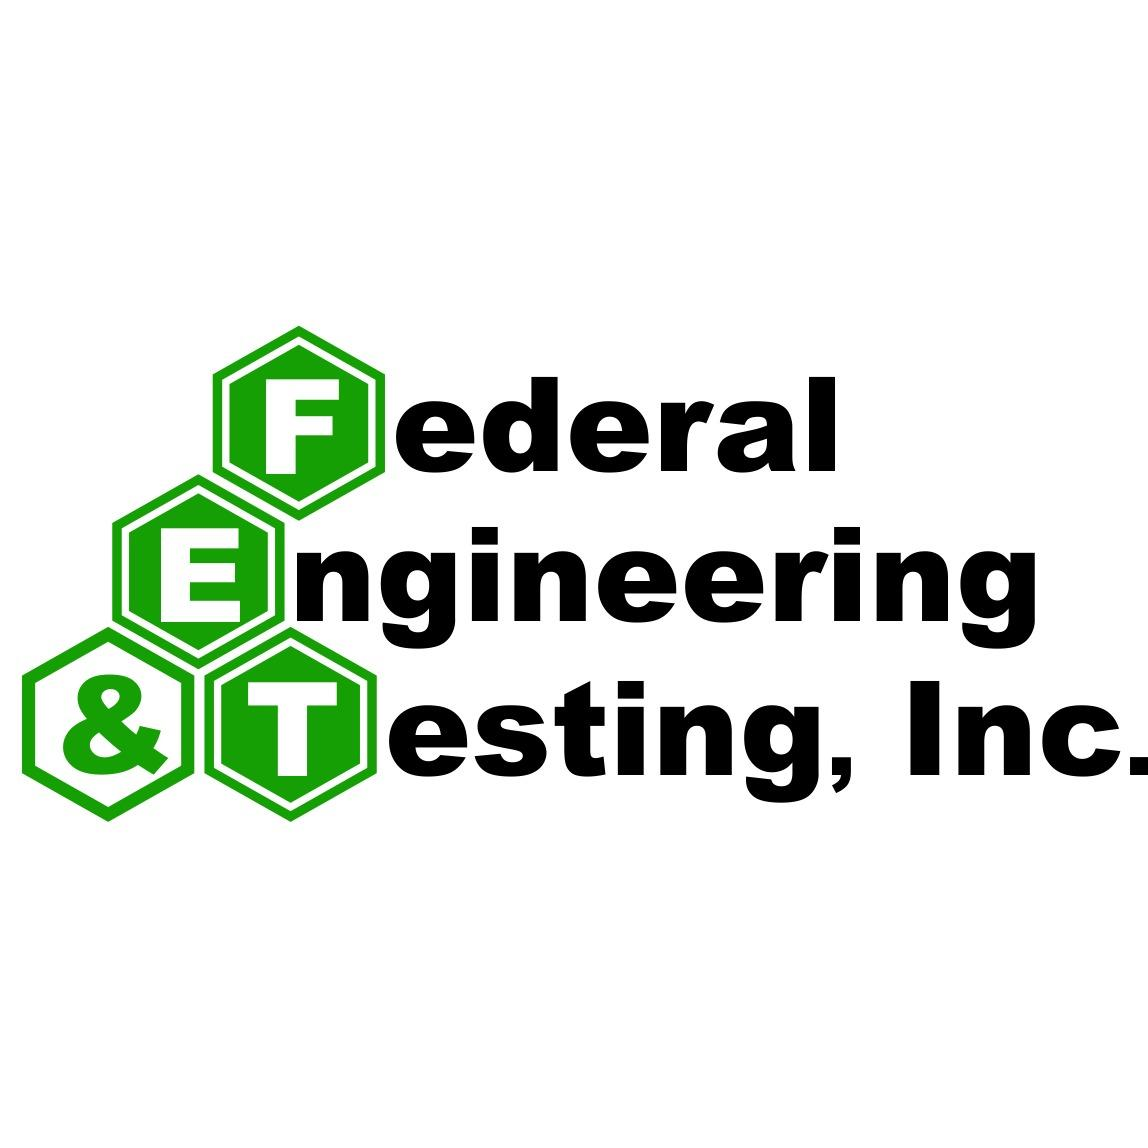 Federal Engineering and Testing, Inc.